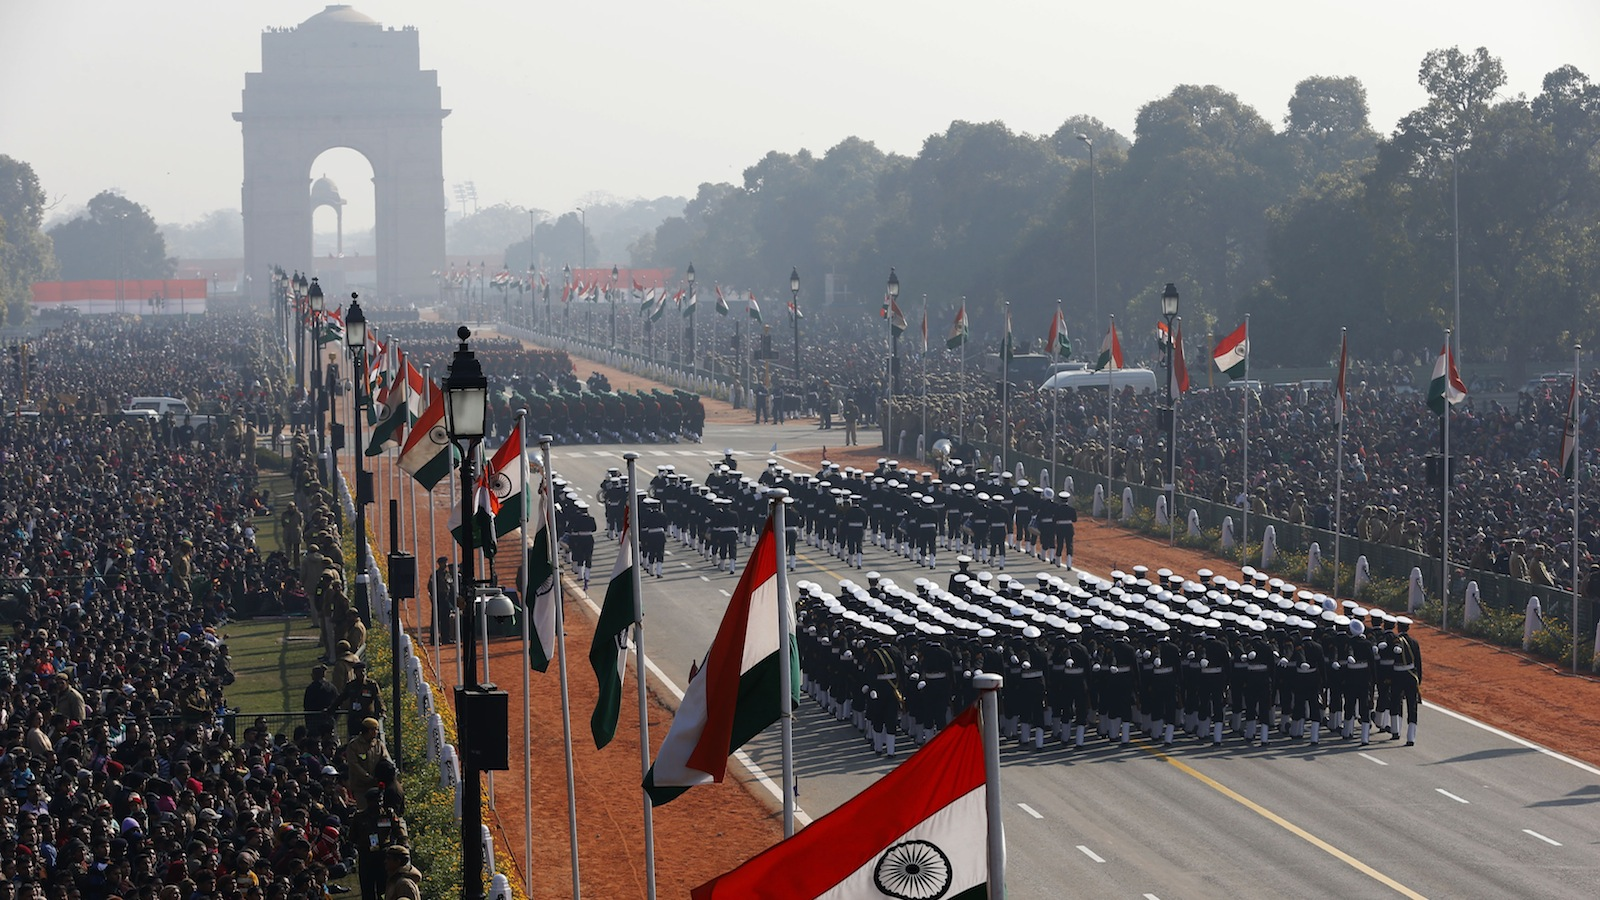 Indian soldiers march during the Republic Day parade in New Delhi January 26, 2013. India celebrated its 64th Republic Day on Saturday. REUTERS/Ahmad Masood